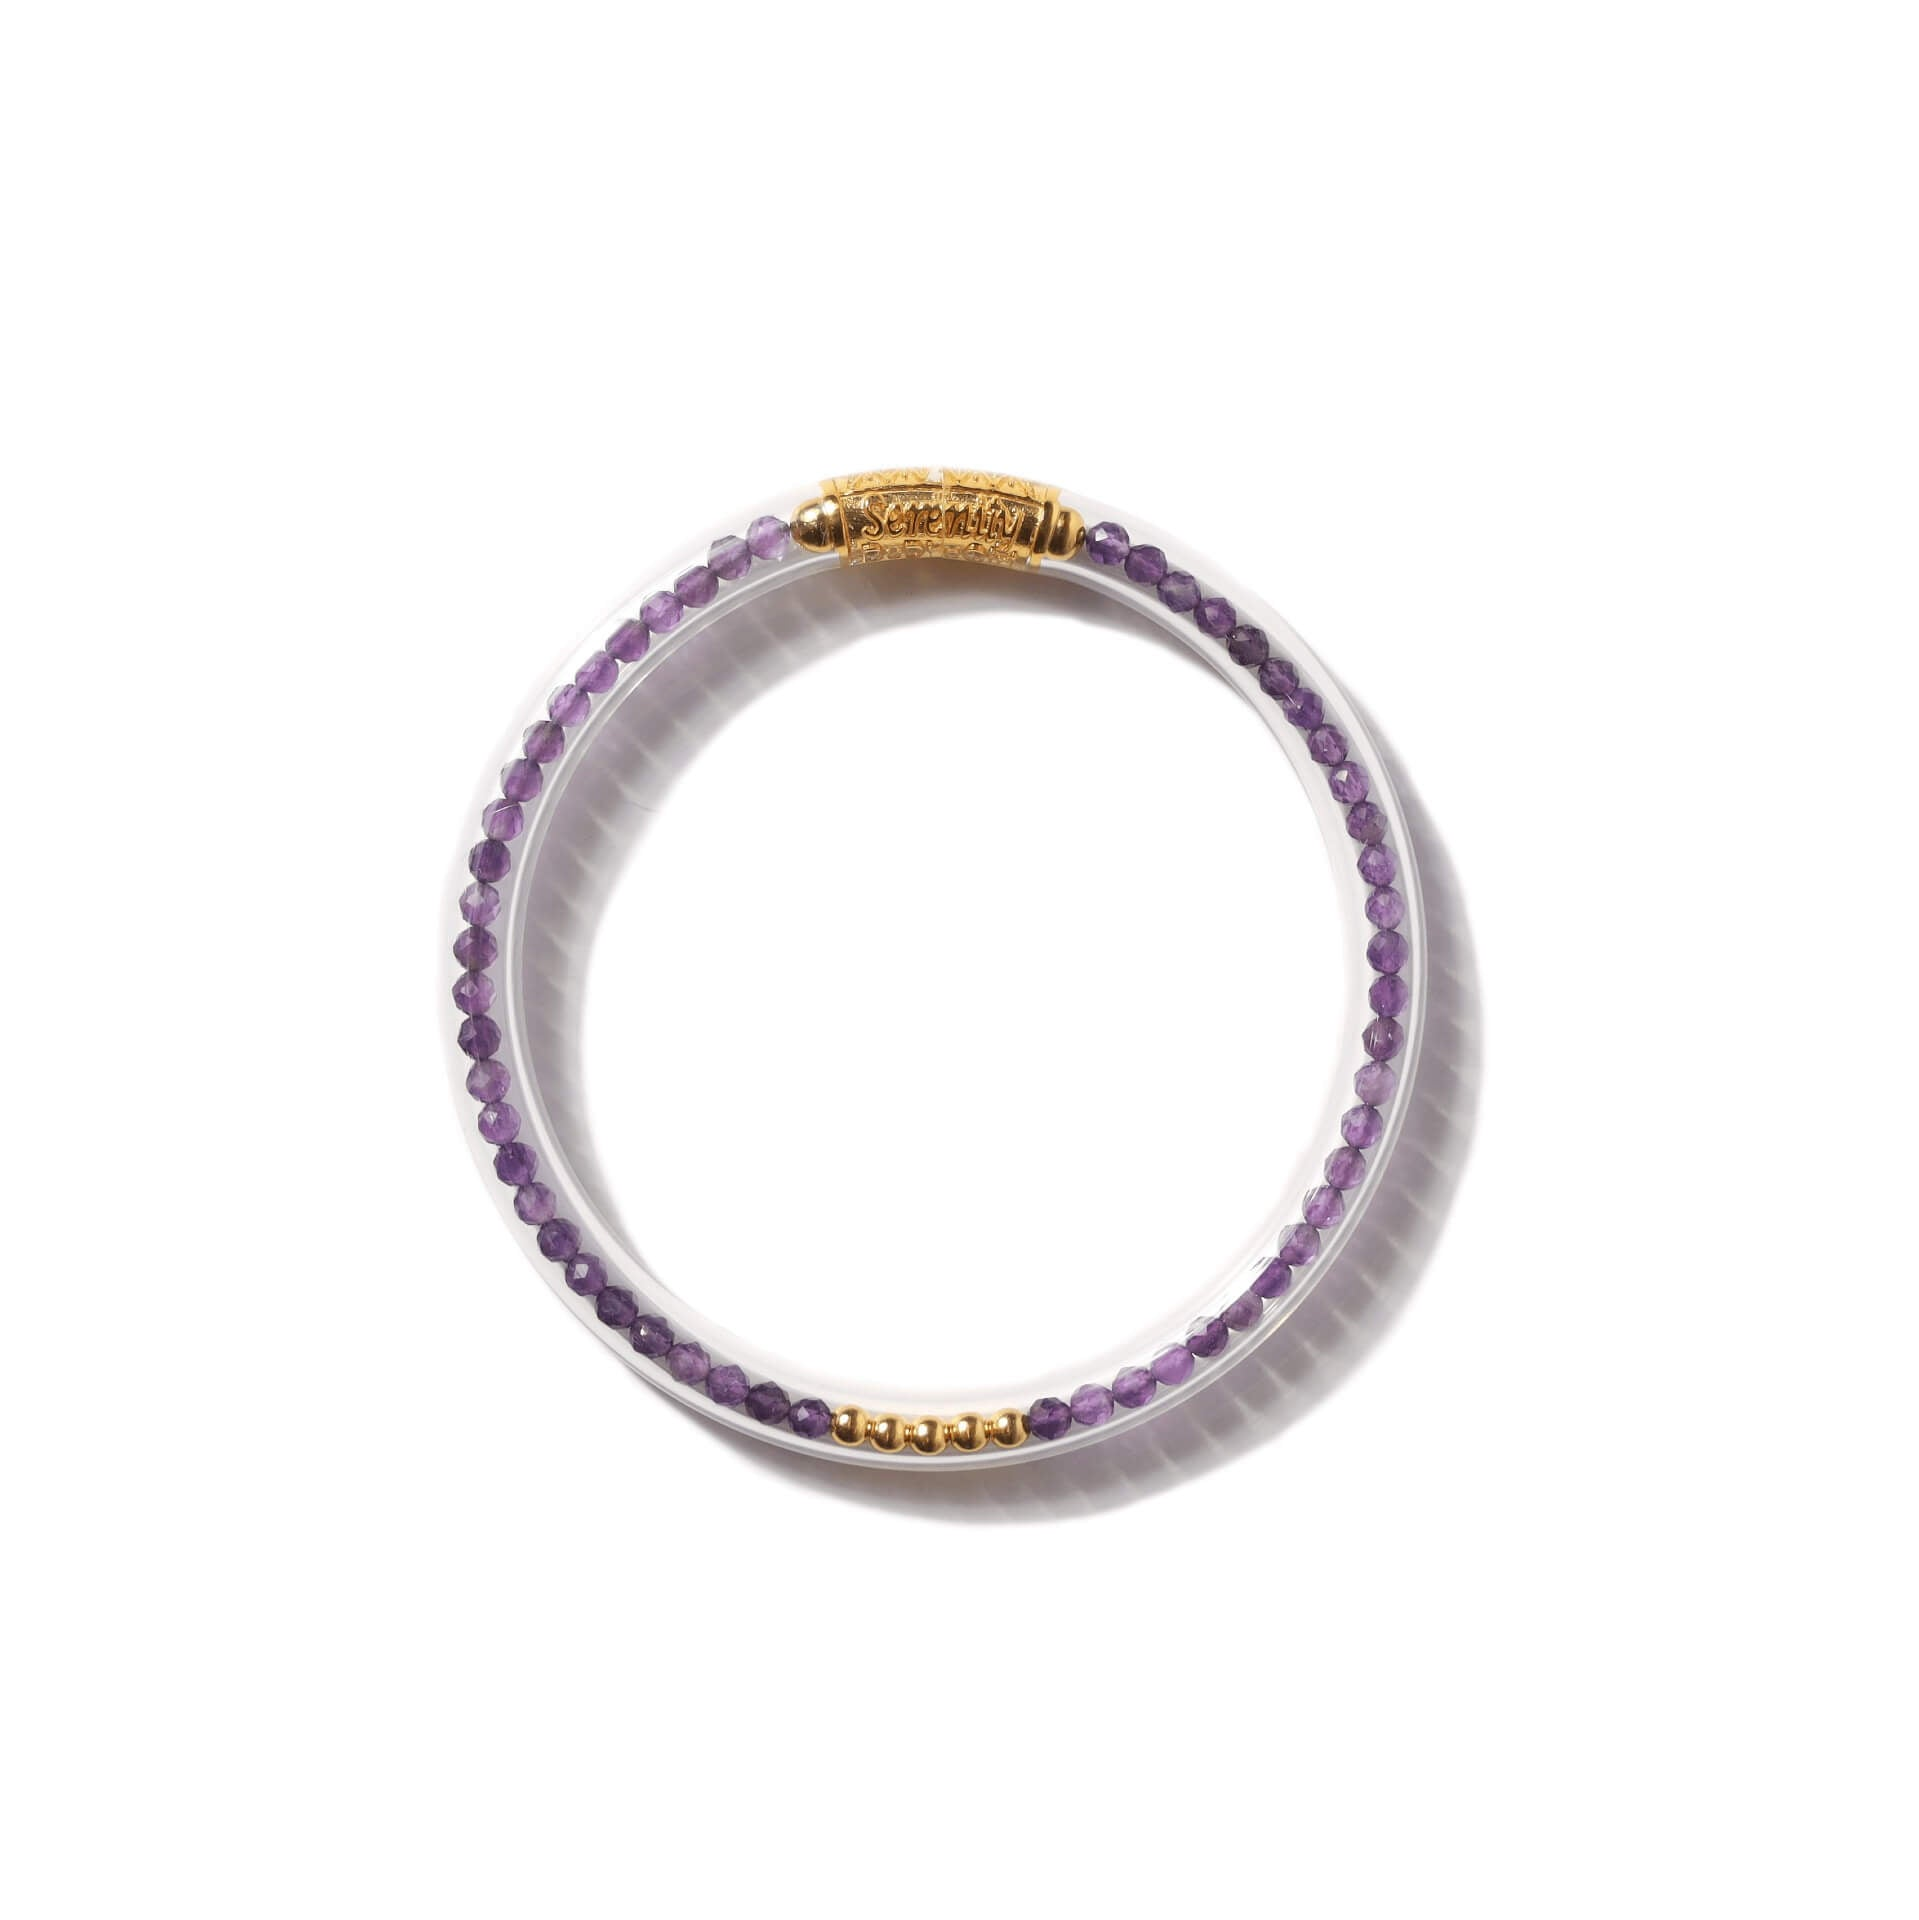 Luxe All Weather Bangle - Amethyst | BuDhaGirl